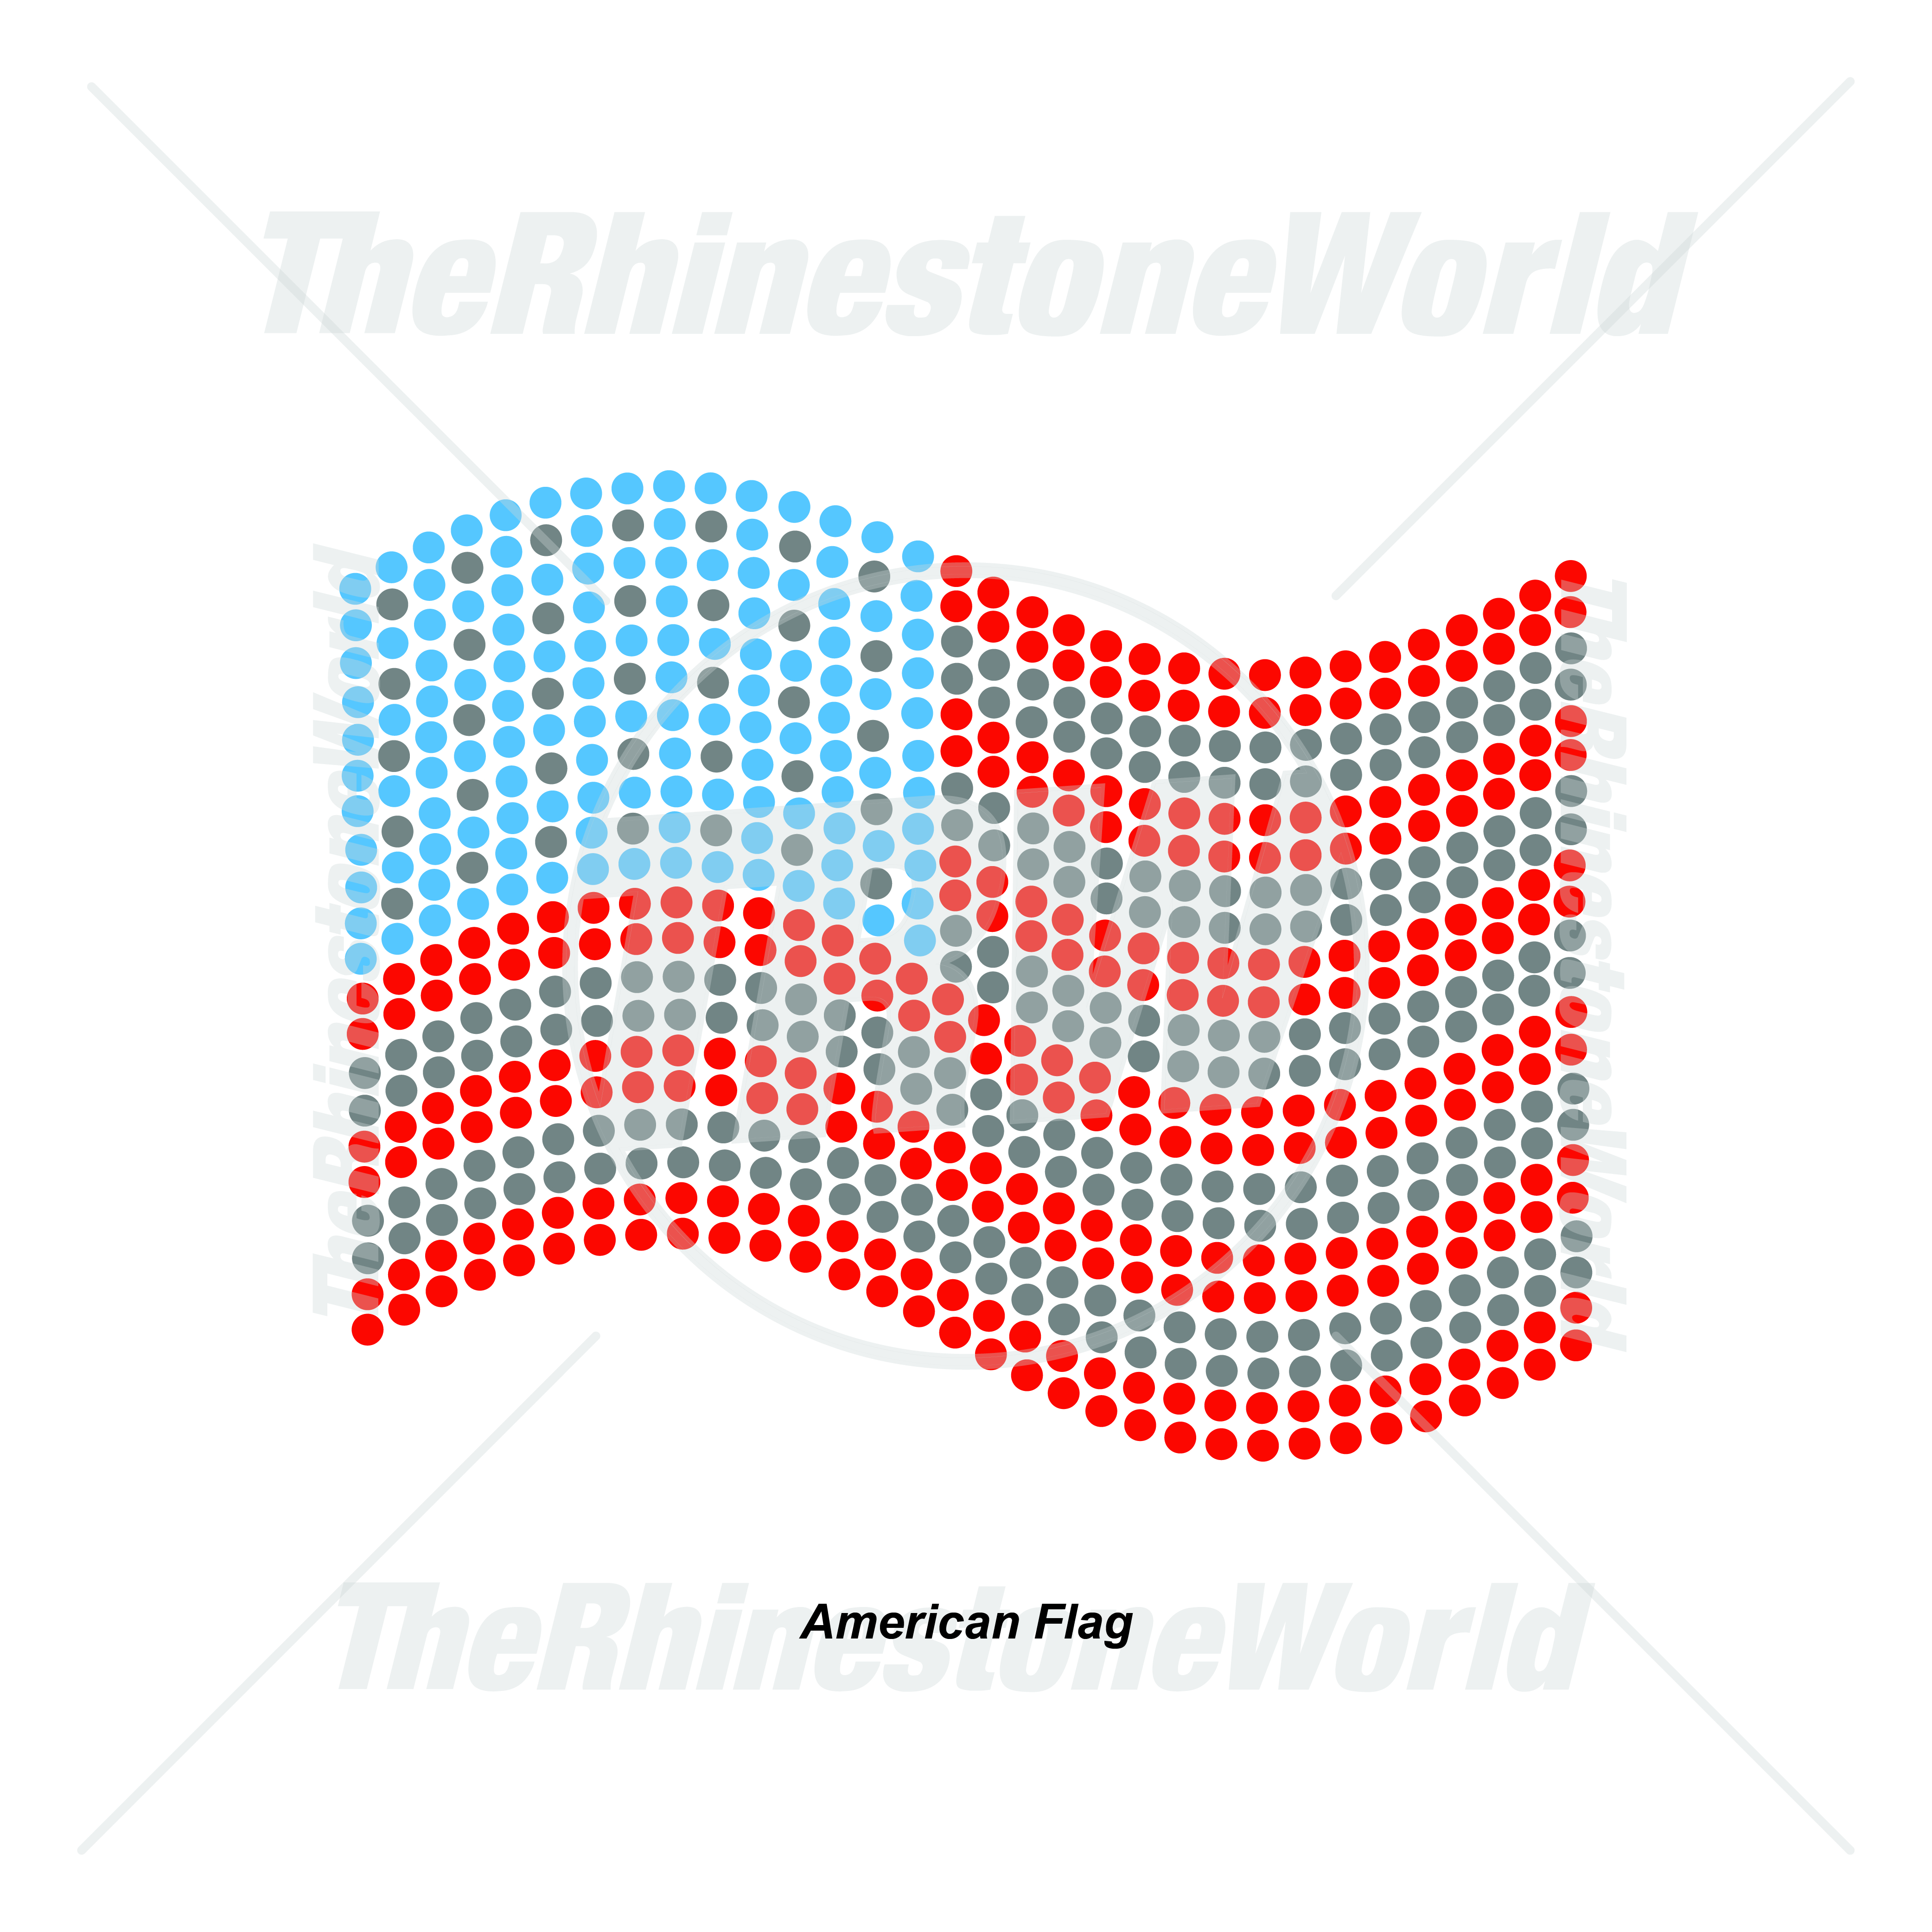 Hoilday Pack Vol 1 American Flag - Download